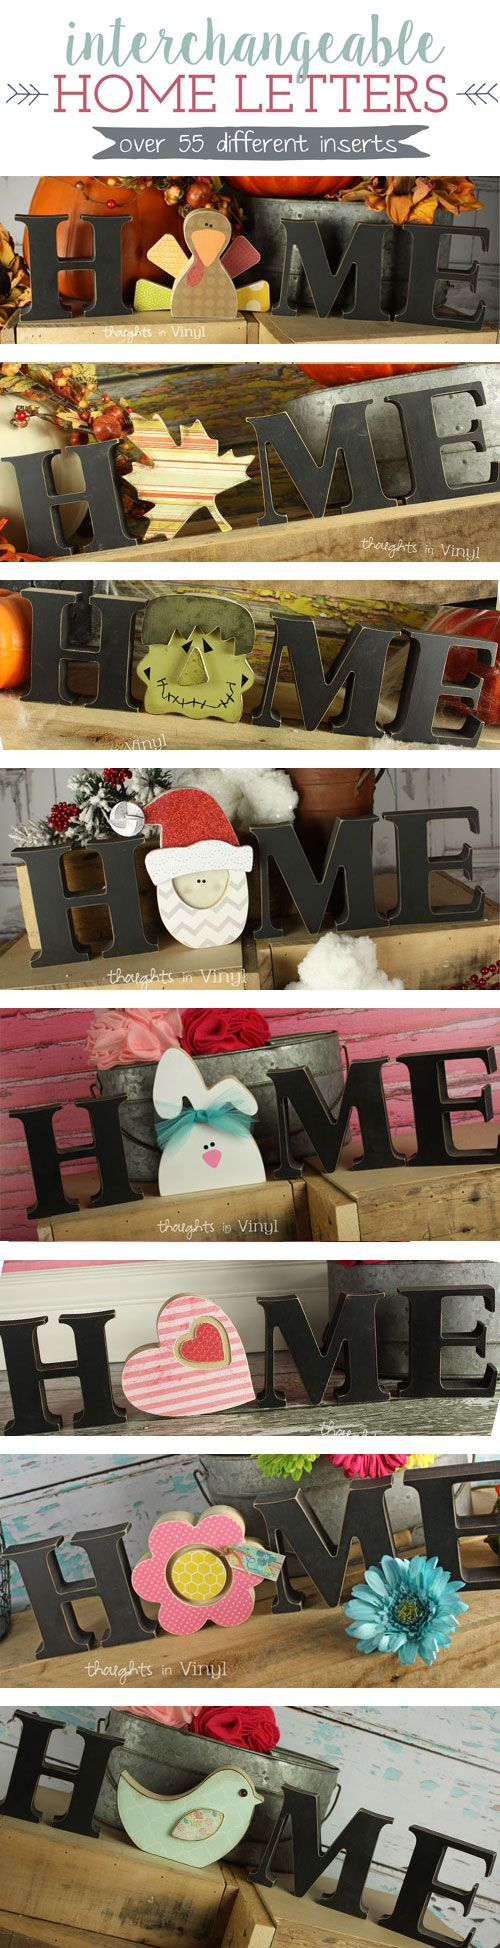 Interchangeable Home Letters    Over 55 different inserts to pick from!  Great for super Saturdday, girls night out, or craft groups!  So fun!  Have a new insert for each month!